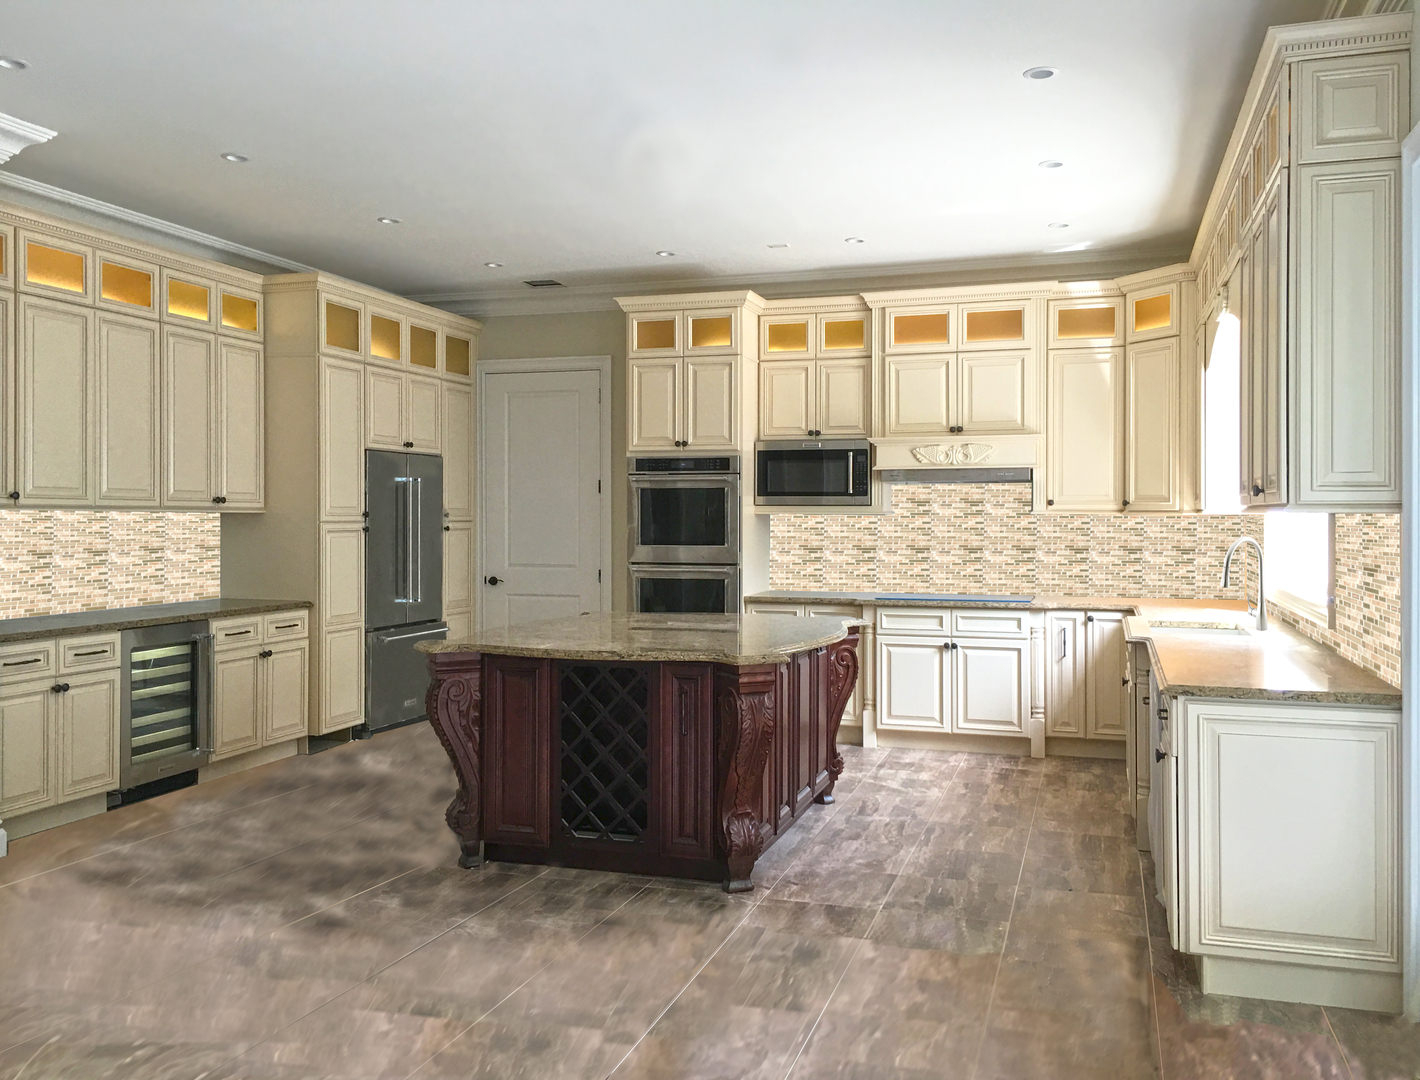 Kitchen cabinets in flushing ny -  Wholesale Retail